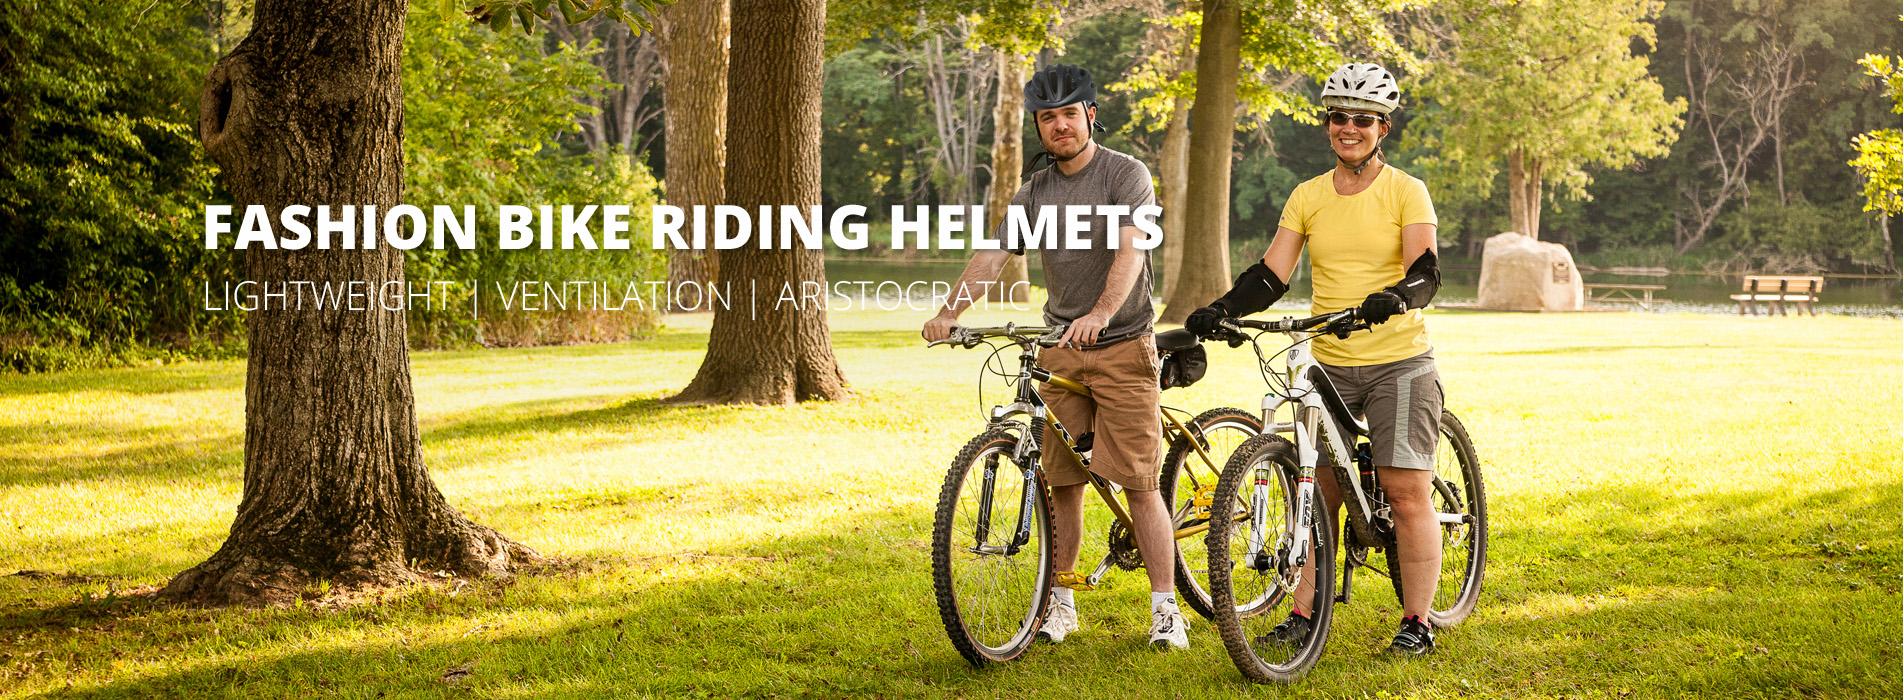 bike riding helmets AU-037 banner